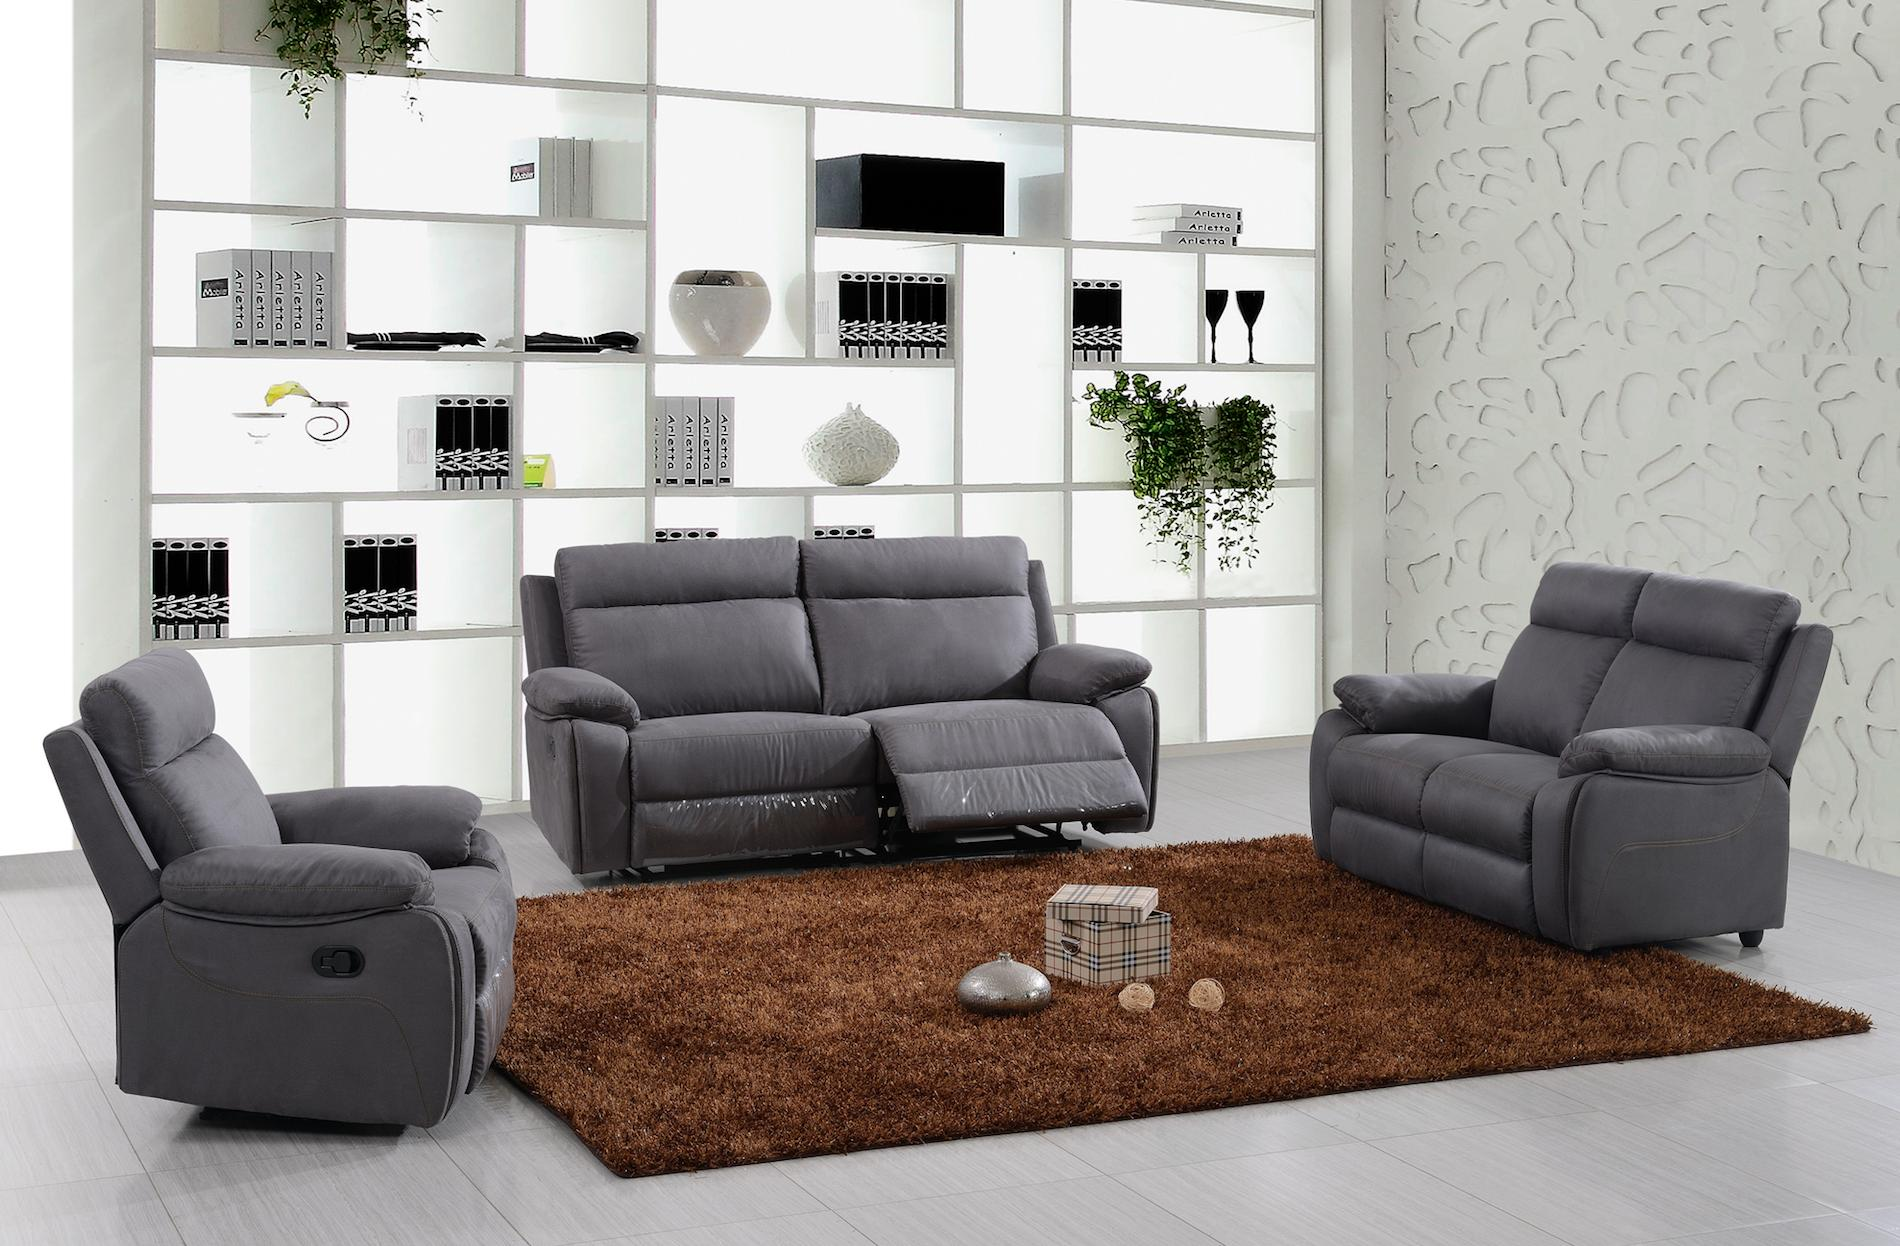 ensemble canap de relaxation 3 places lectrique et 2. Black Bedroom Furniture Sets. Home Design Ideas